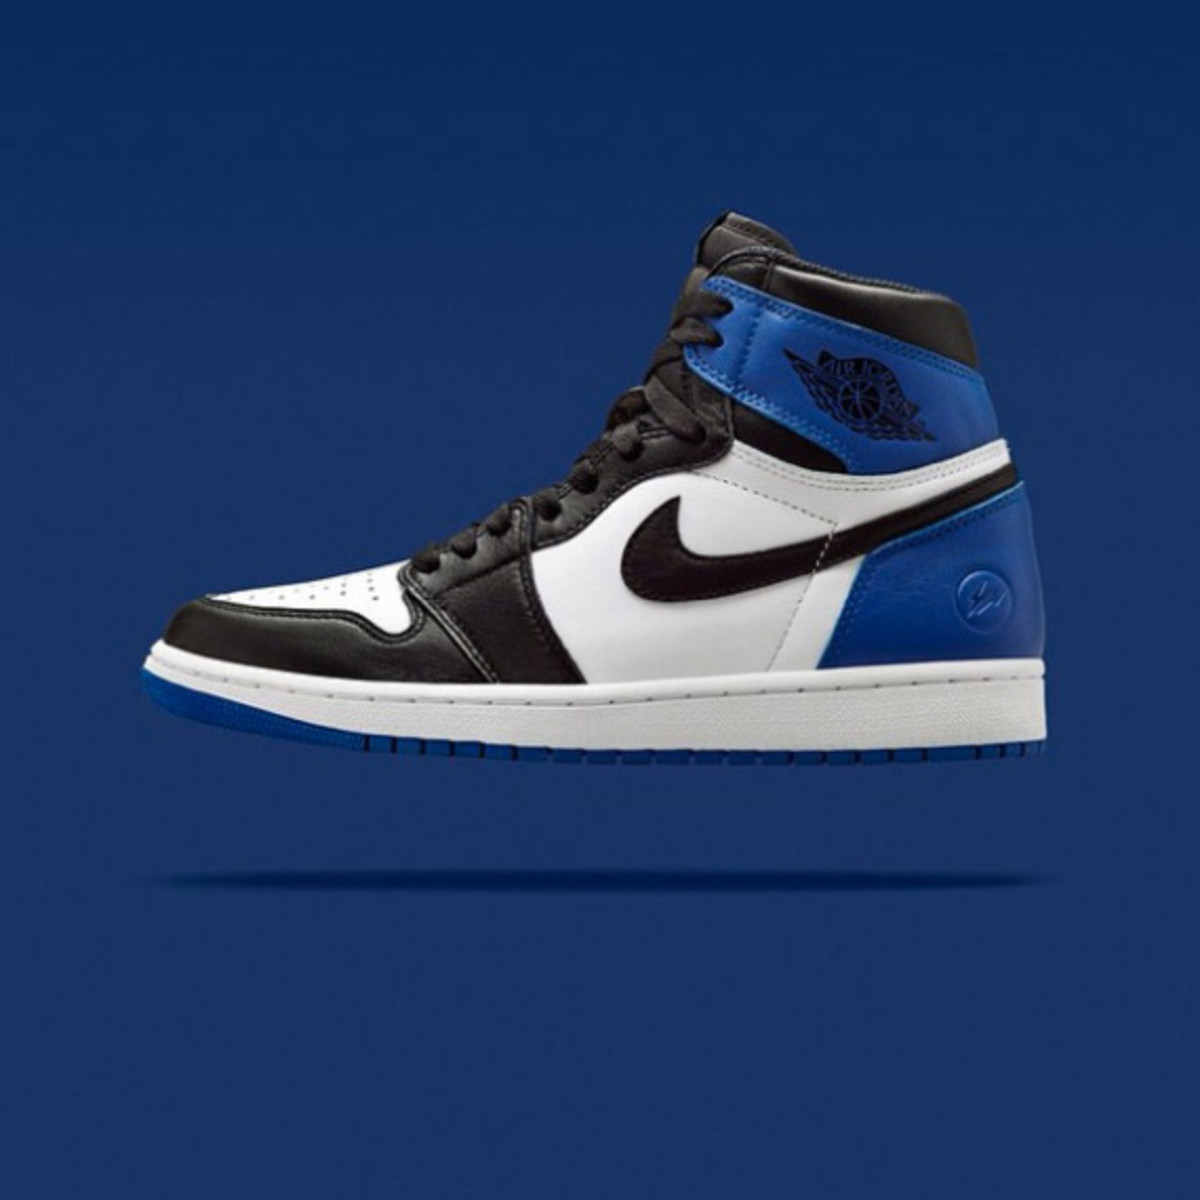 fragment design x Air Jordan 1 Retro High OG | Release Reminder - 3